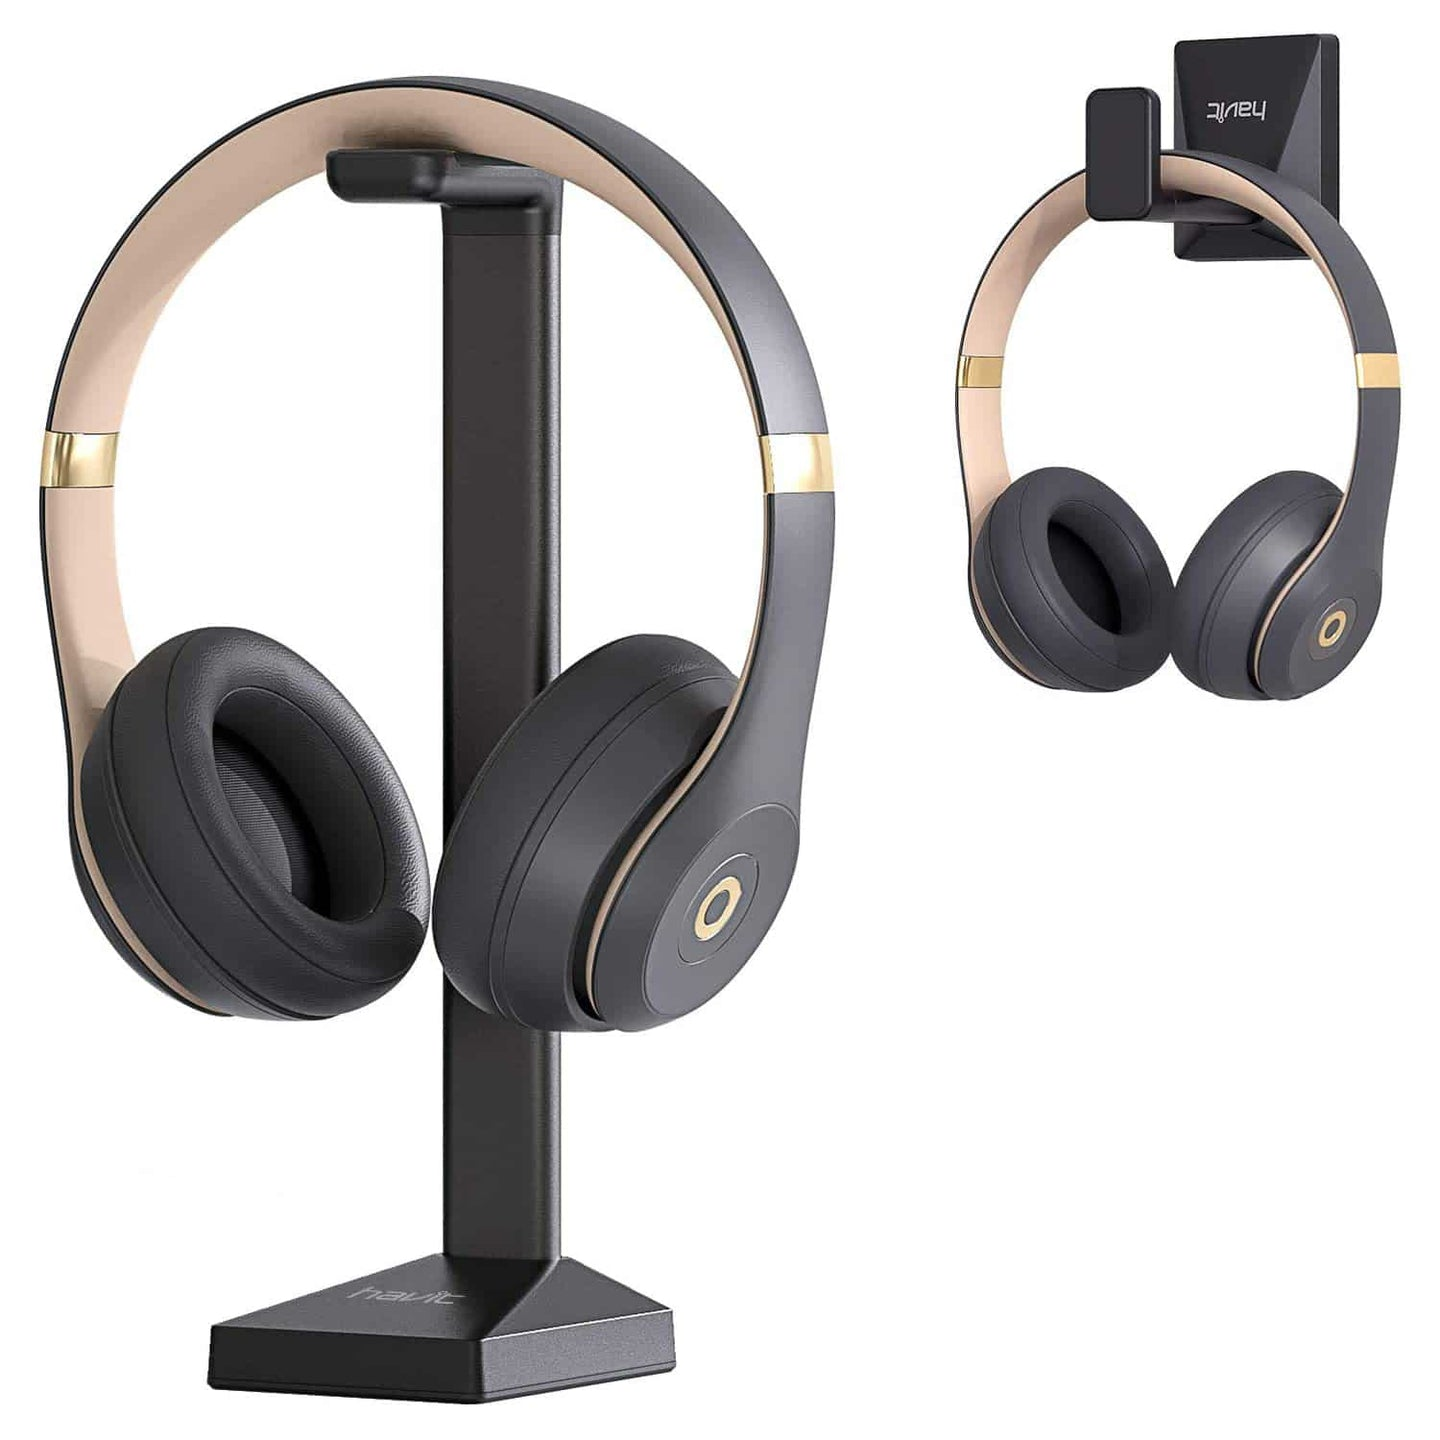 HAVIT TH670 Wall Mounted Headphone Stand with Replaceable Headset Hanger & Removable Base